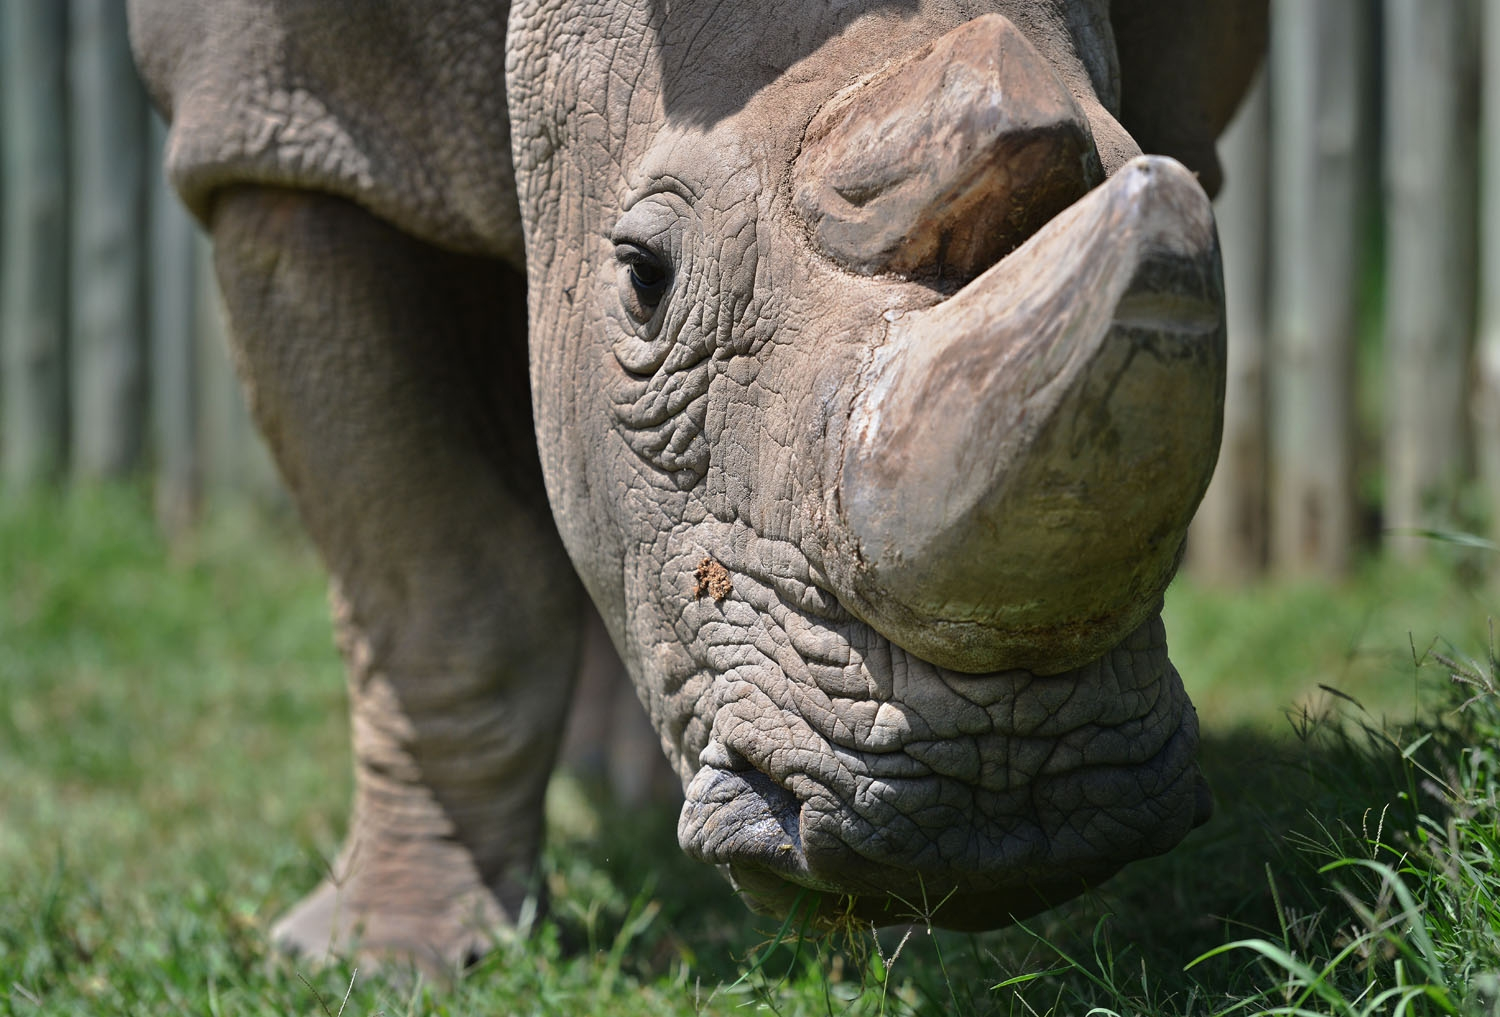 (FILES) In this file photo taken on December 05, 2016, Sudan, the last known male of the northern white rhinoceros subspecies, grazes in his paddock, at the Ol Pejeta conservancy in Laikipia County -- at the foot of Mount Kenya -- that is home to the plan